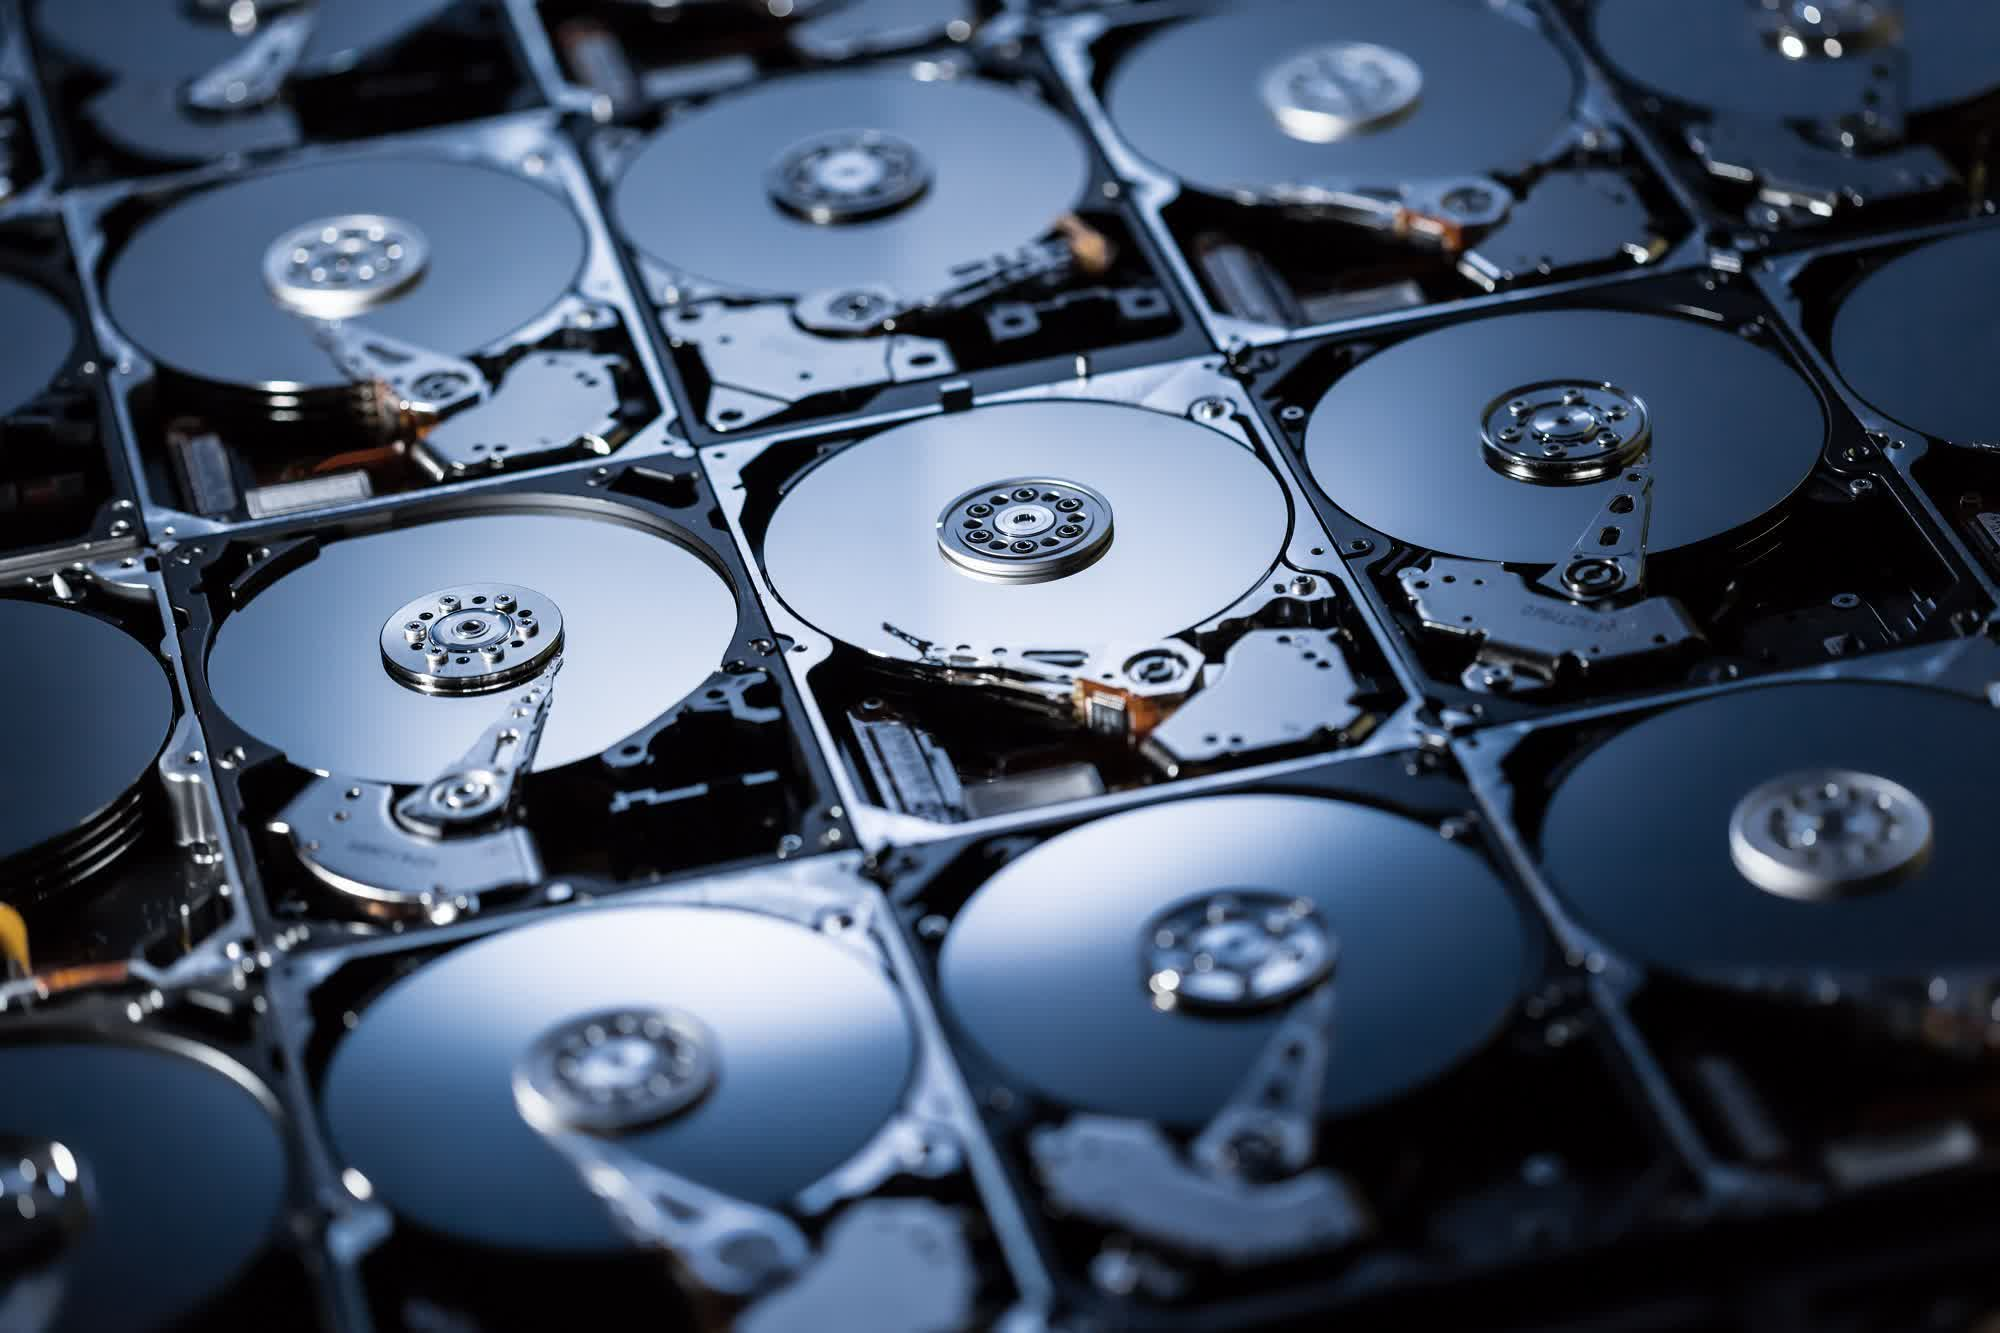 Western Digital's 5400 RPM drives aren't what they seem